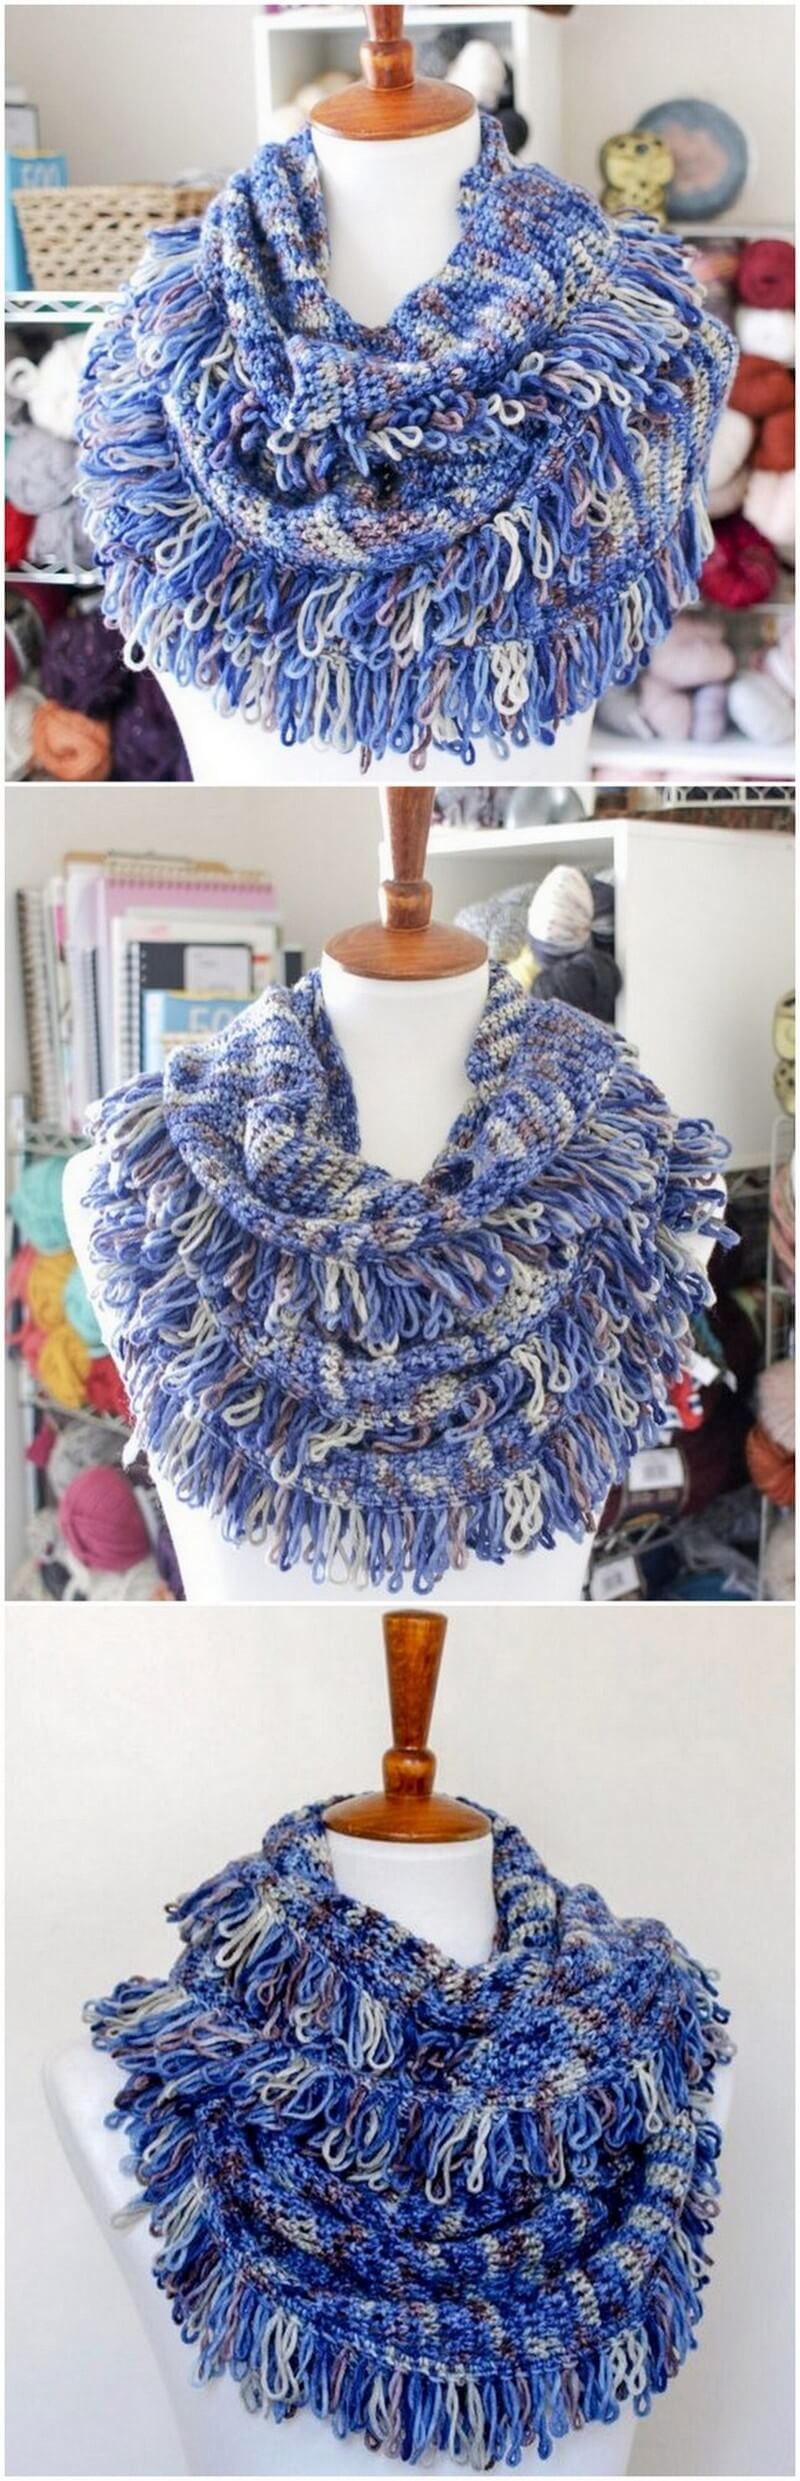 Easy Crochet Scarf Pattern (6)